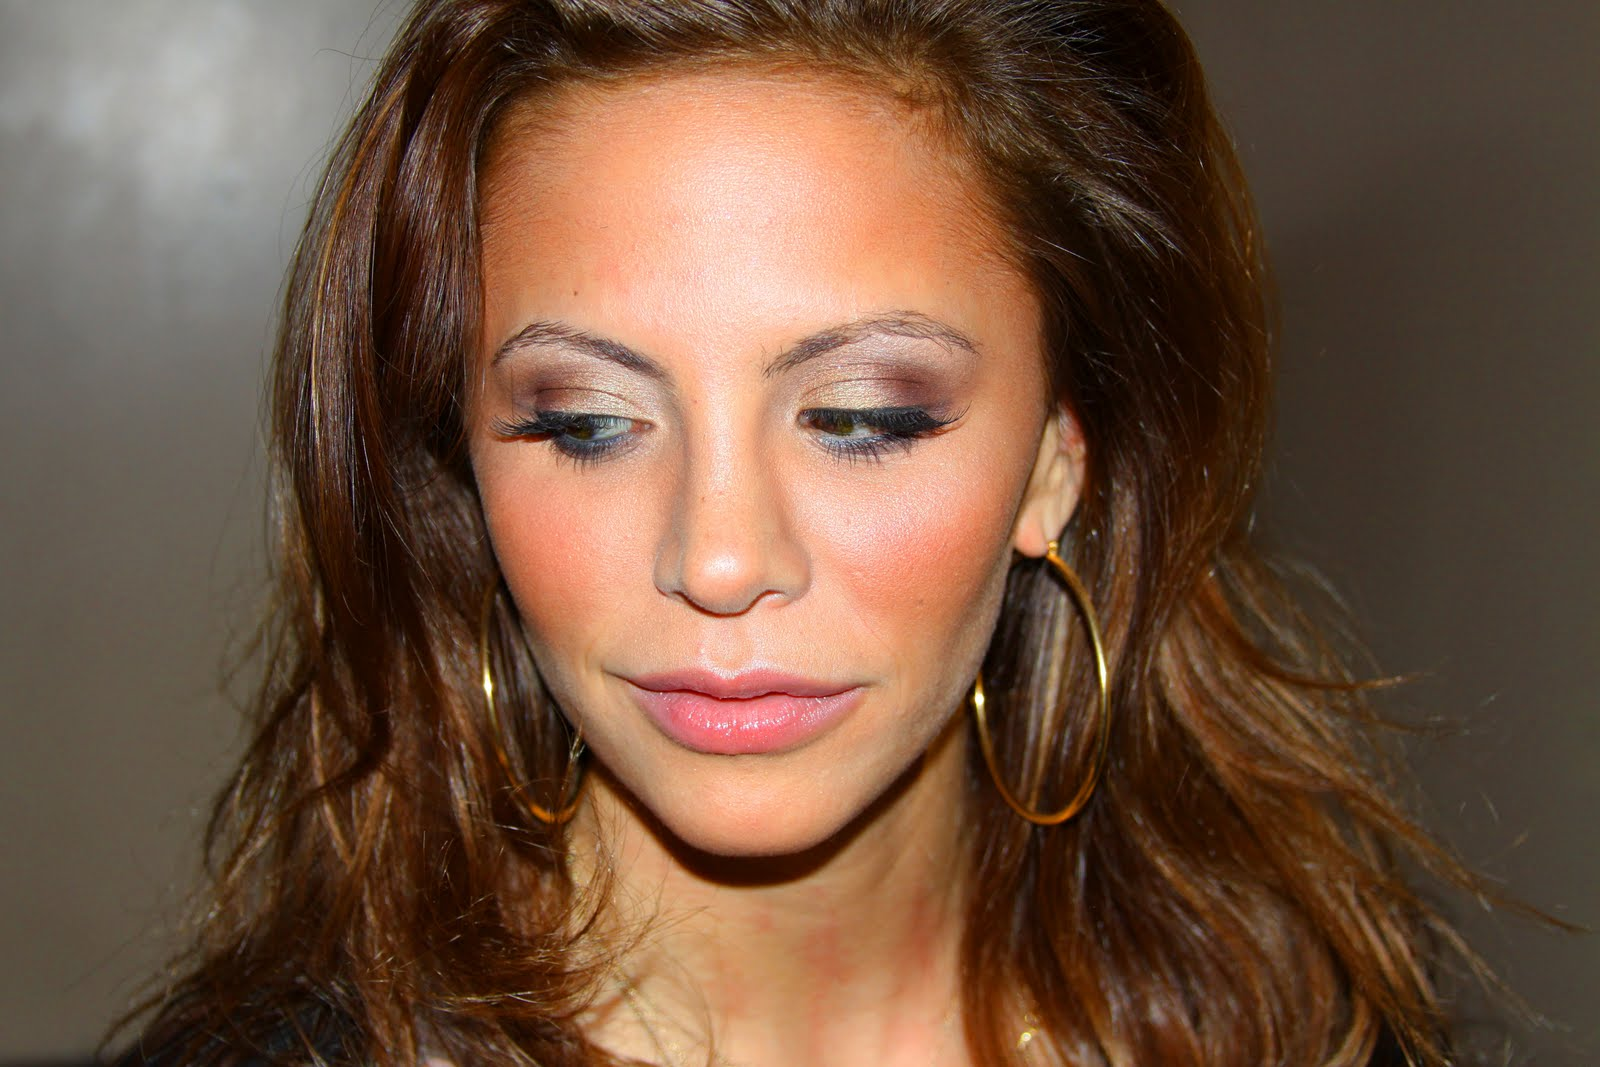 Gia Allemand Rachelise Makeup Artistry